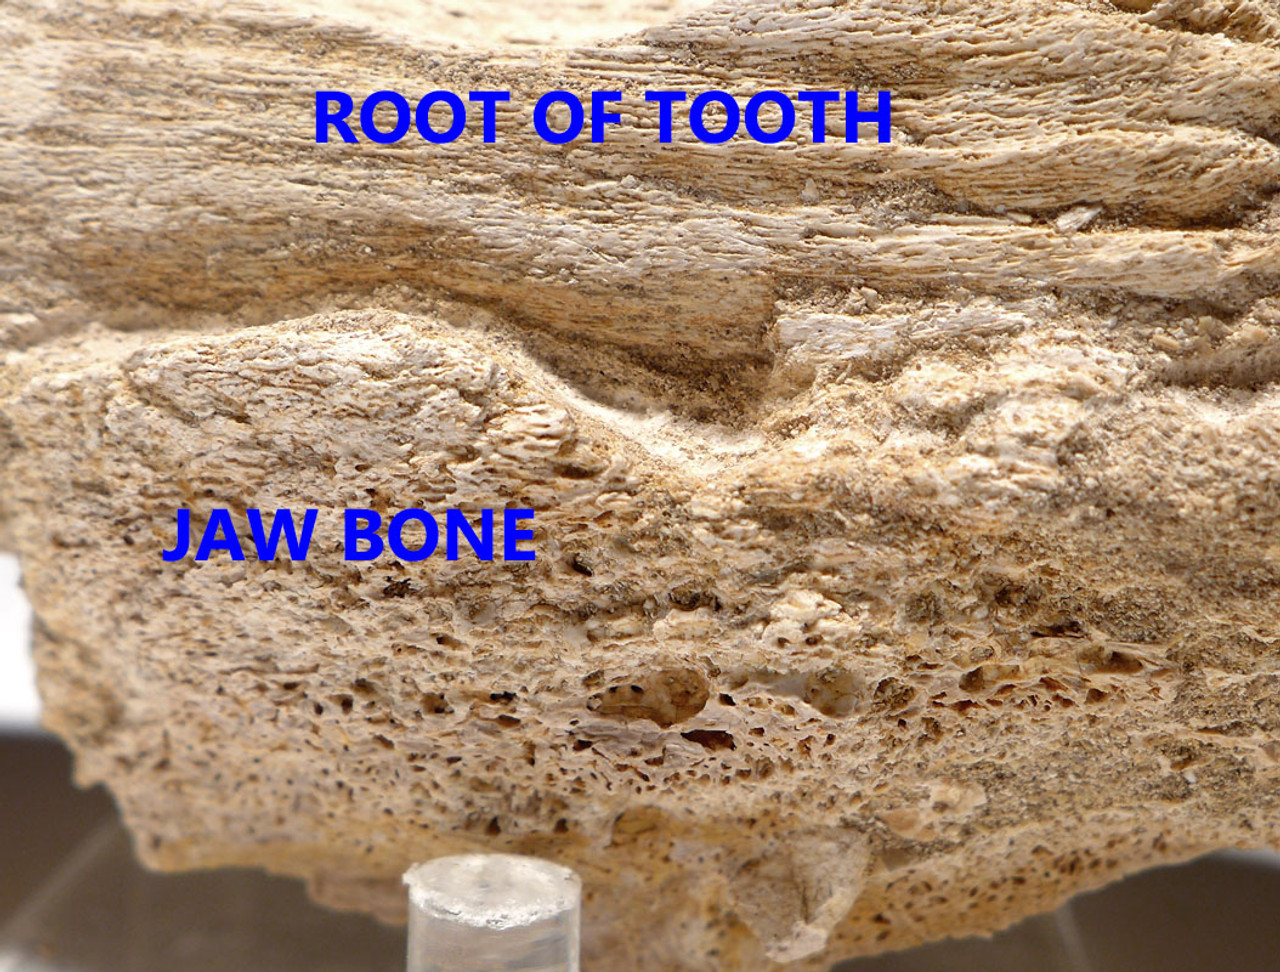 DT1XX01 - MONSTROUS MOSASAUR TOOTH WITH ORIGINAL ROOT AND JAW BONE